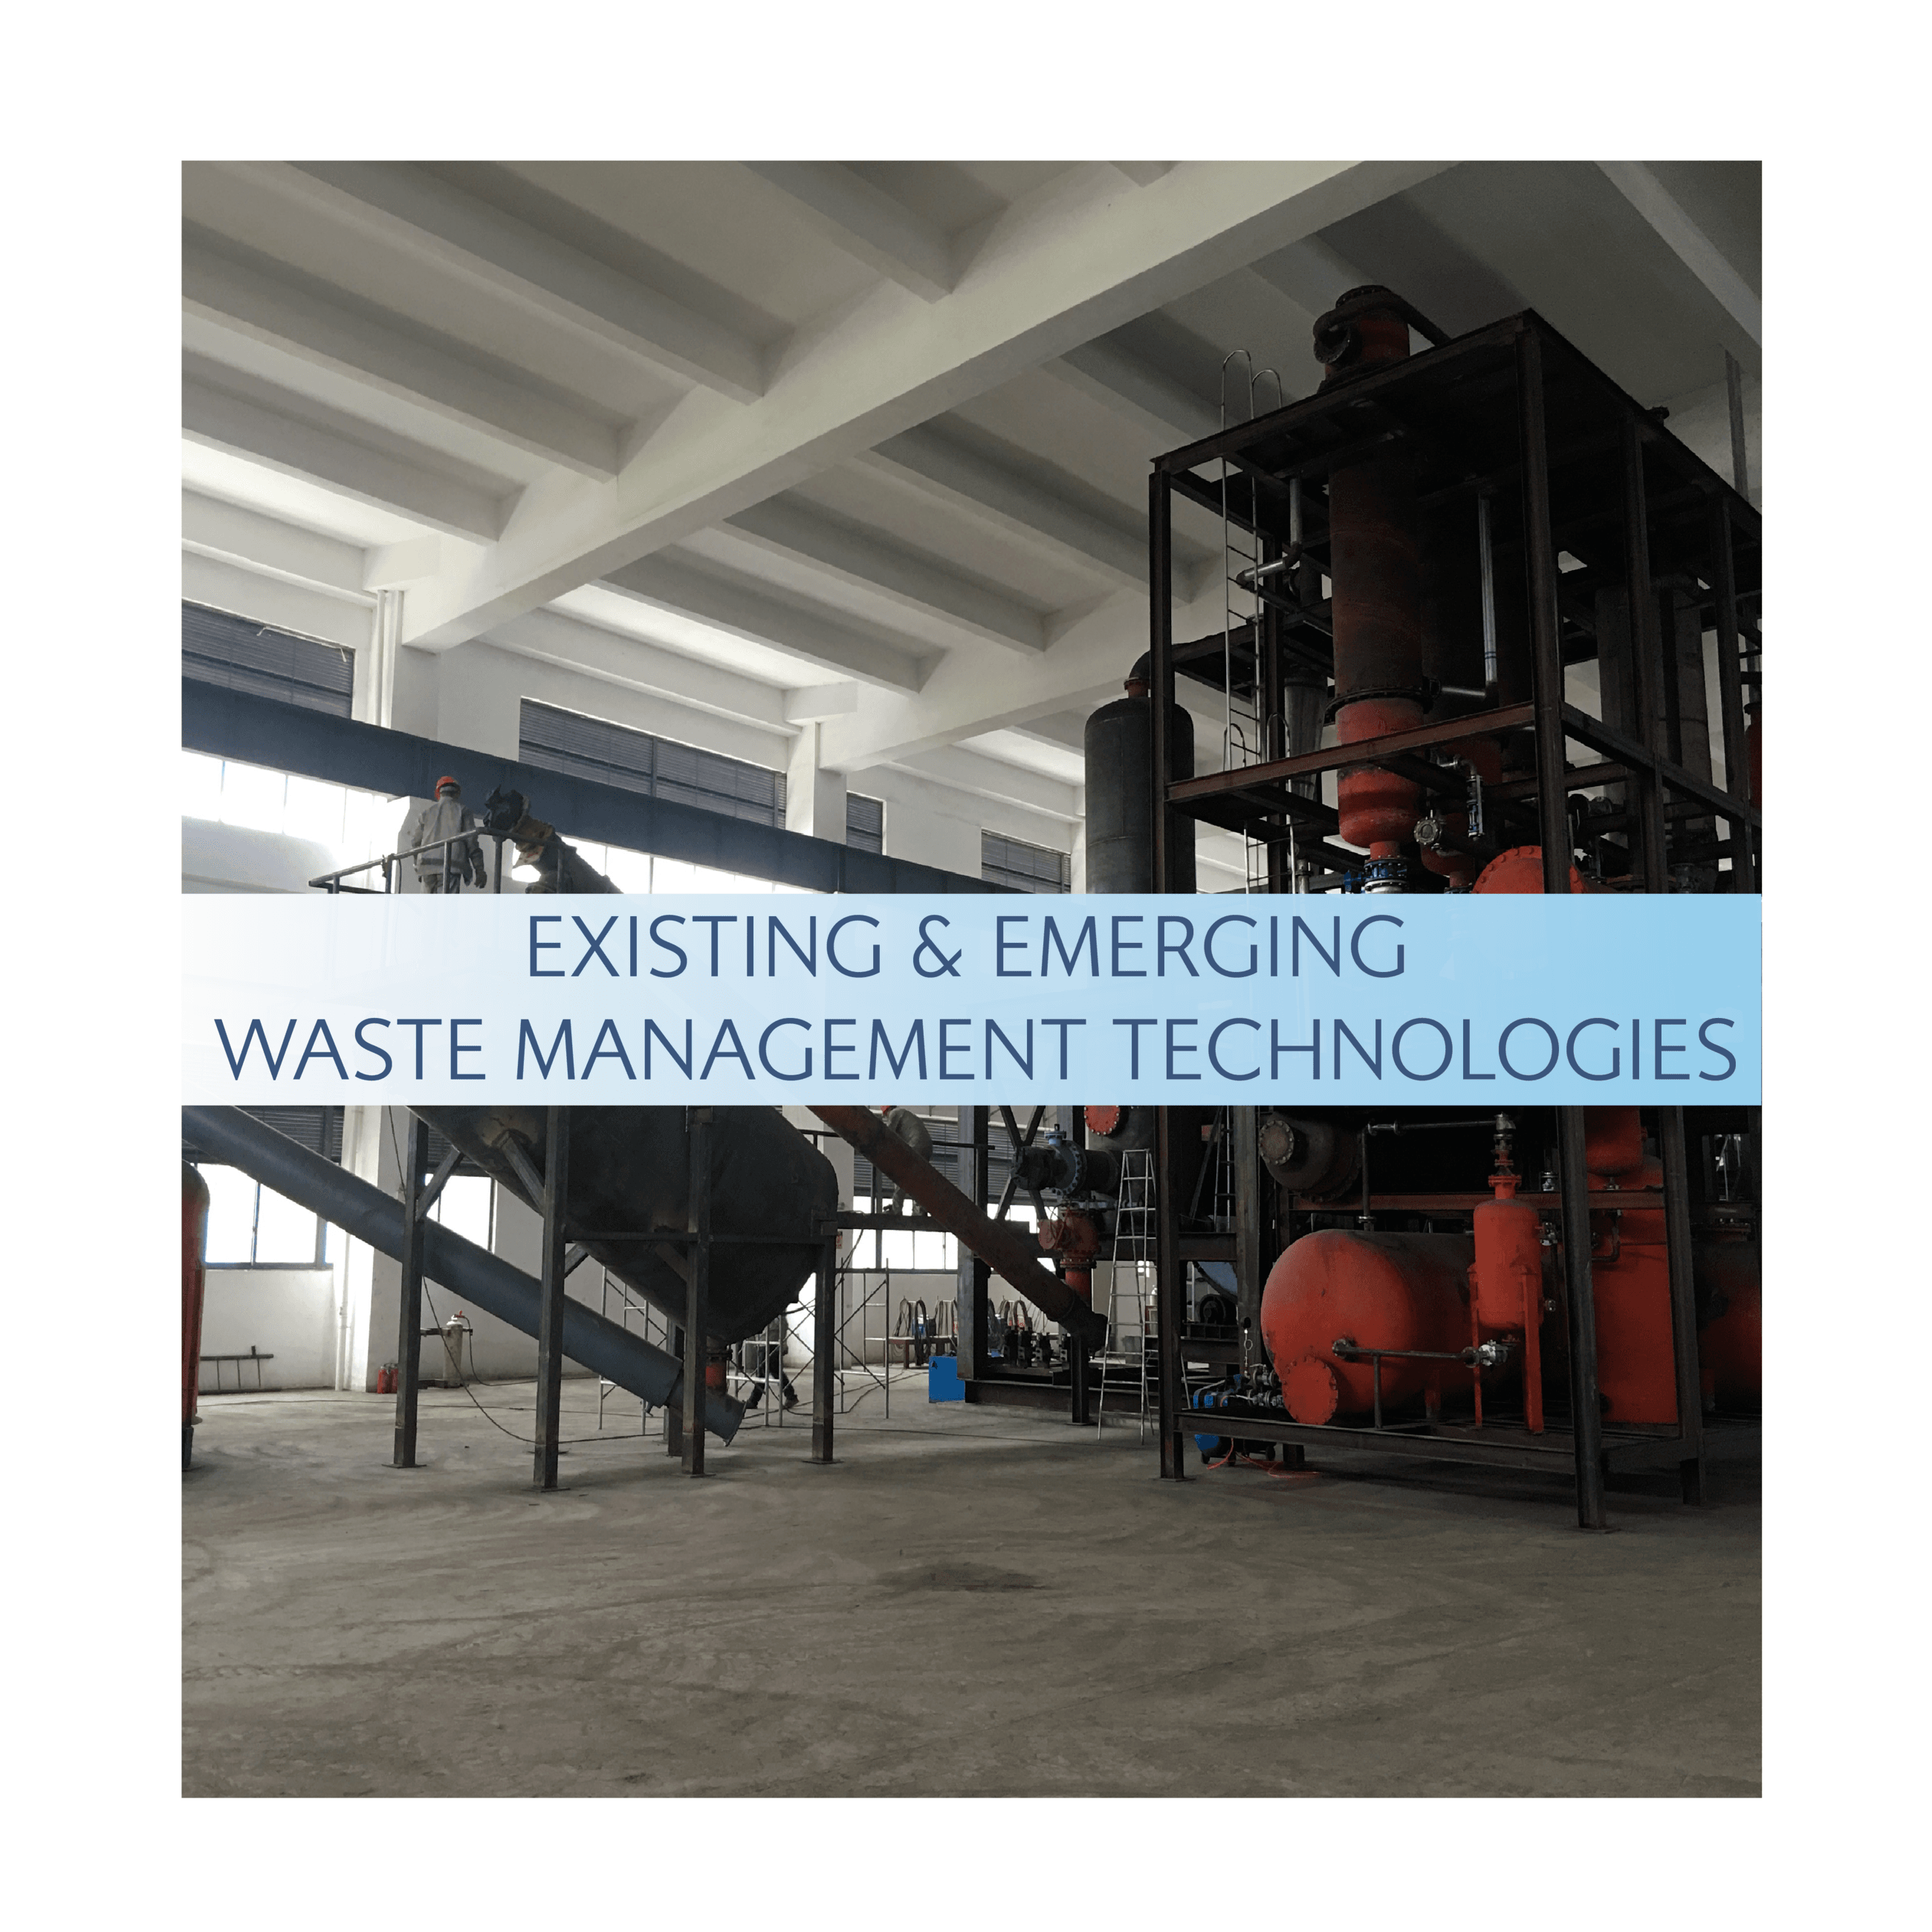 Waste mgmt technologies